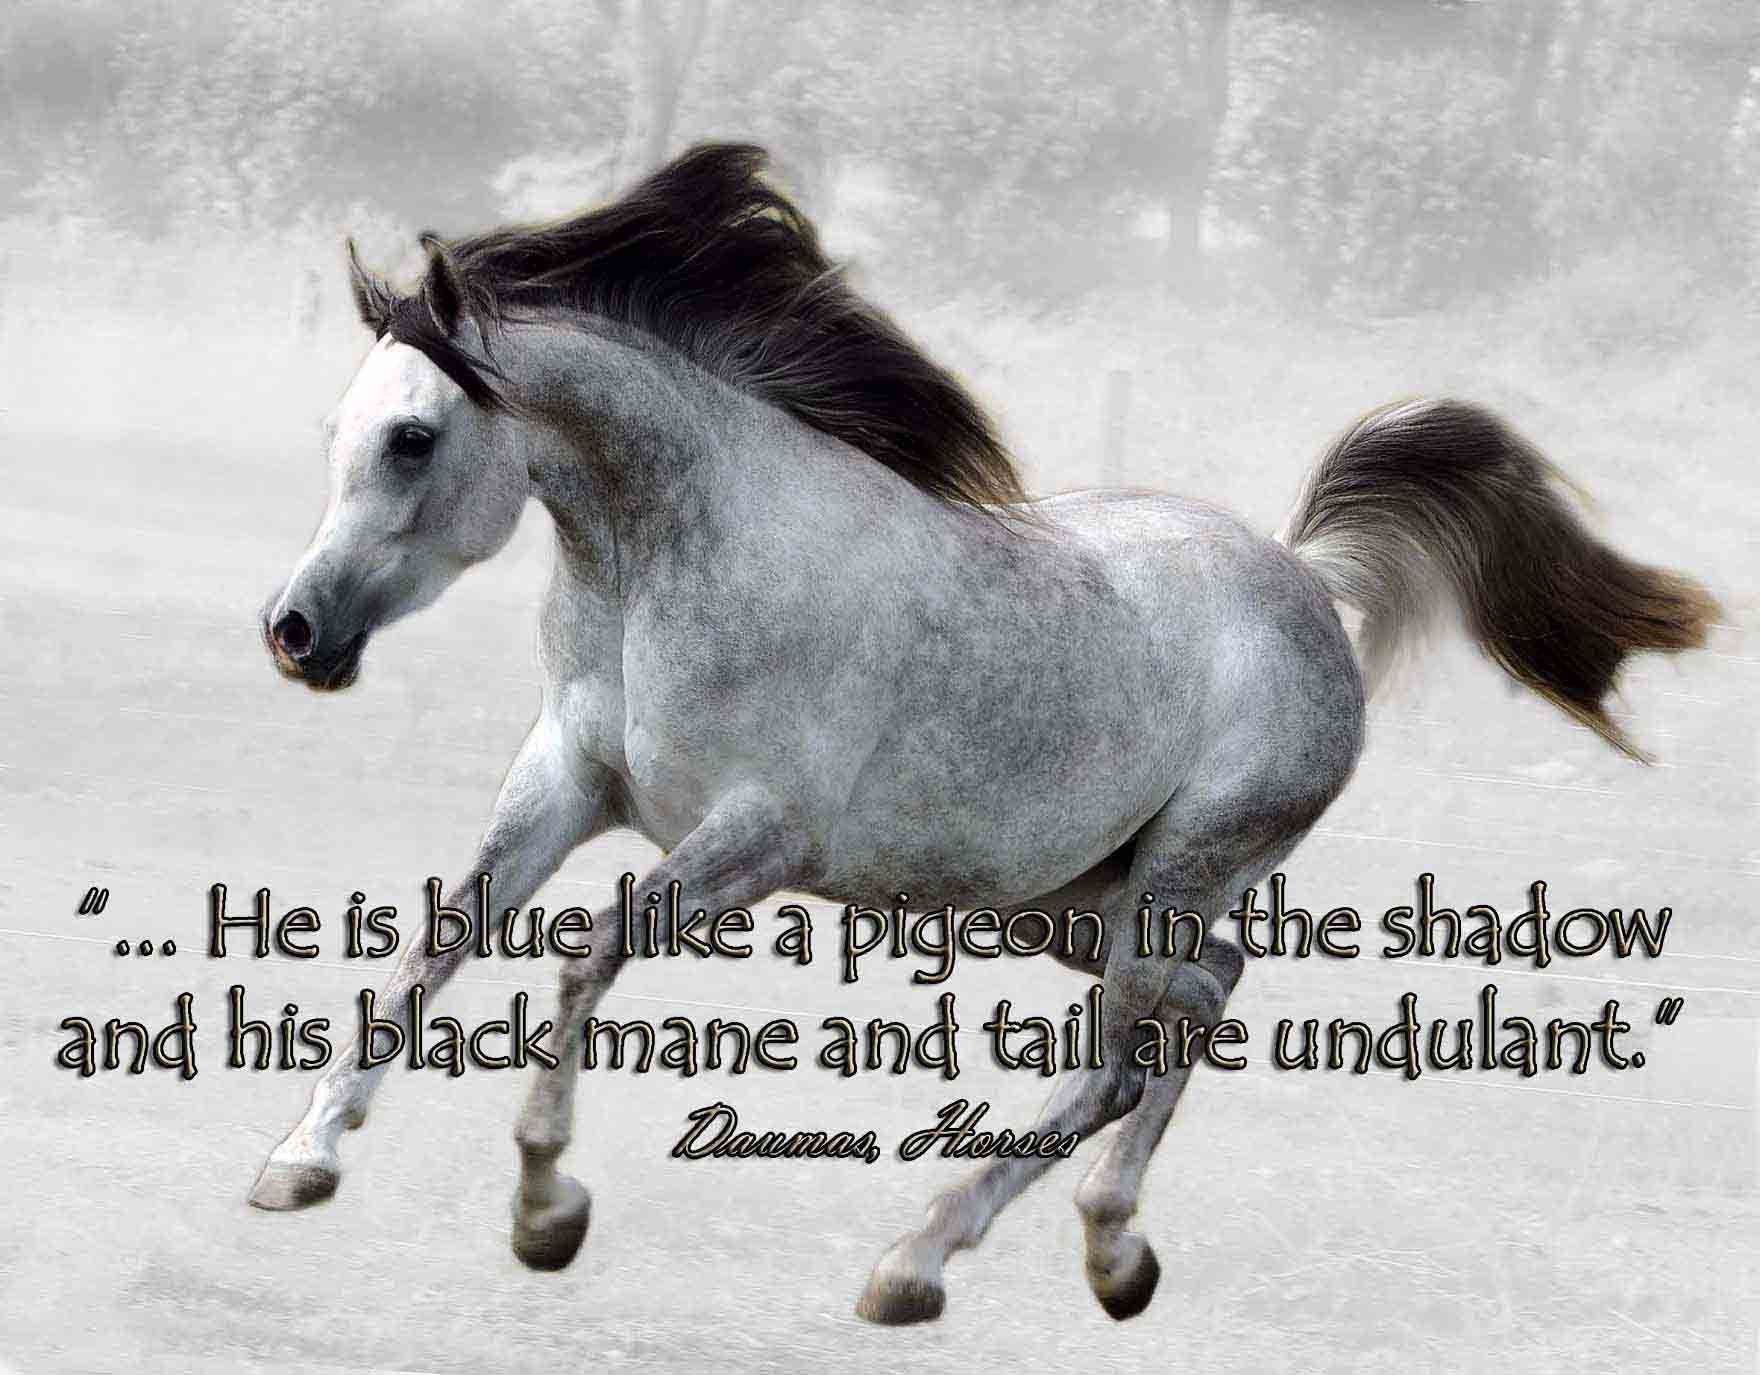 horse quotes and poems that move you - Google Search ...